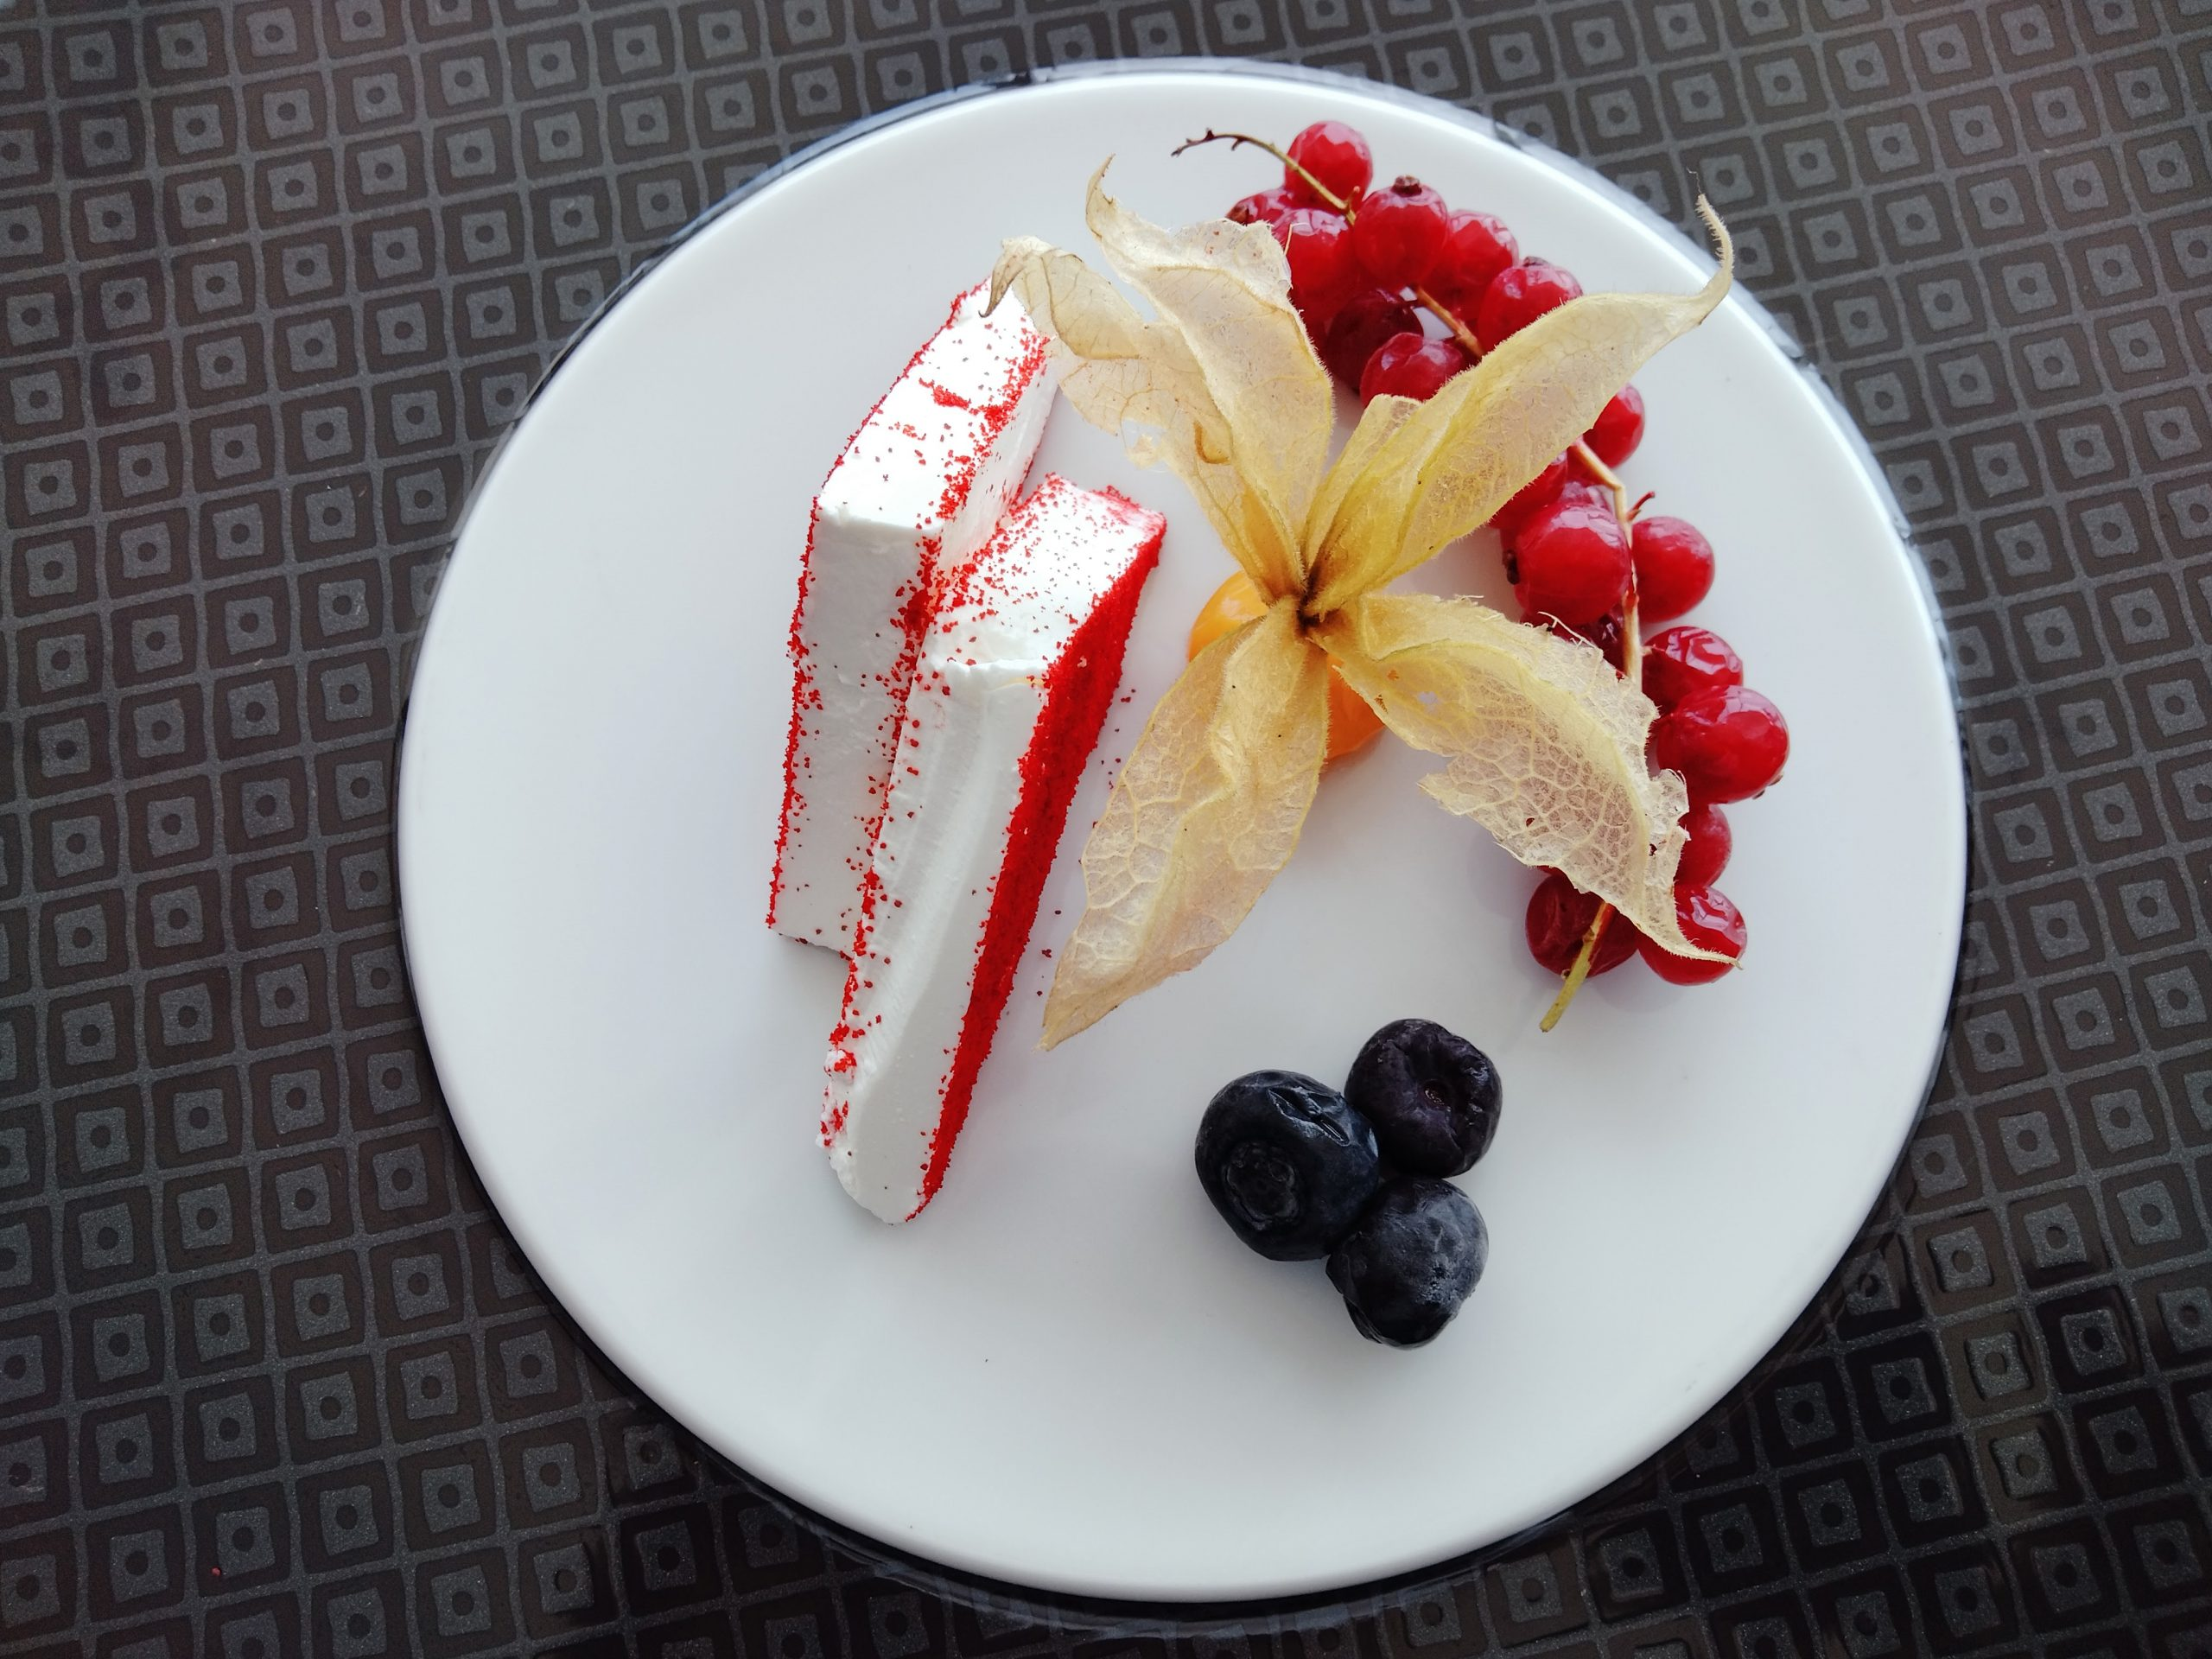 cheese with berries